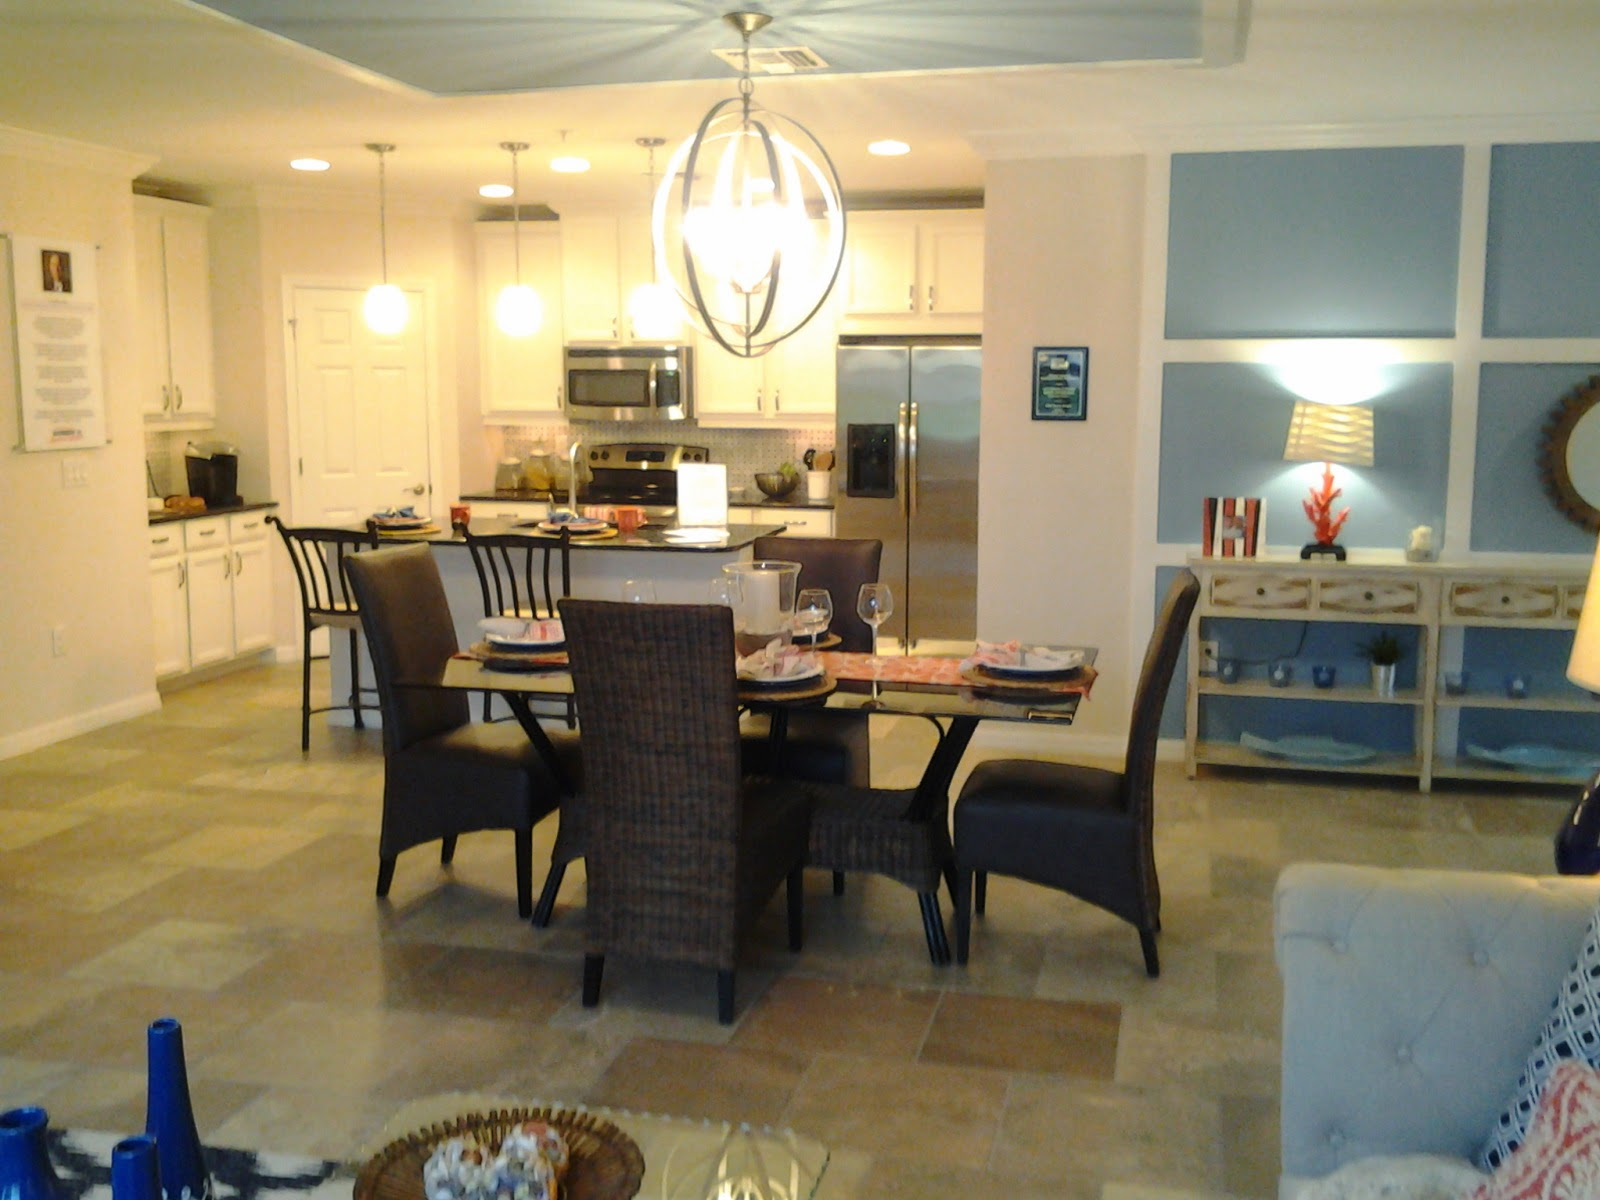 Bay Street DR Horton model home